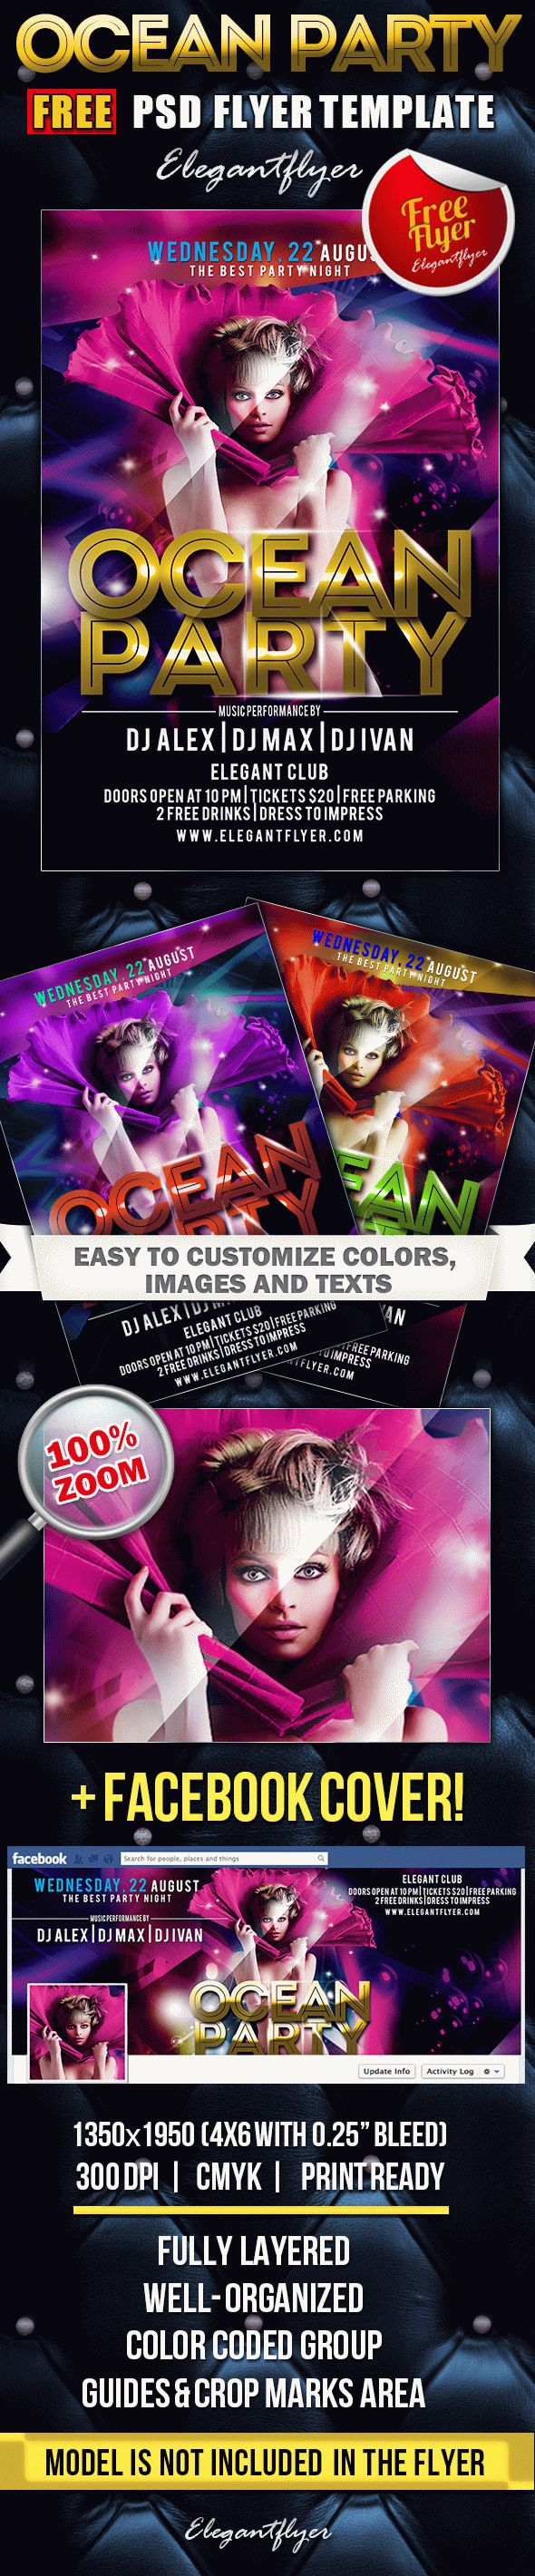 Ocean Party – Free Flyer PSD Template + Facebook Cover